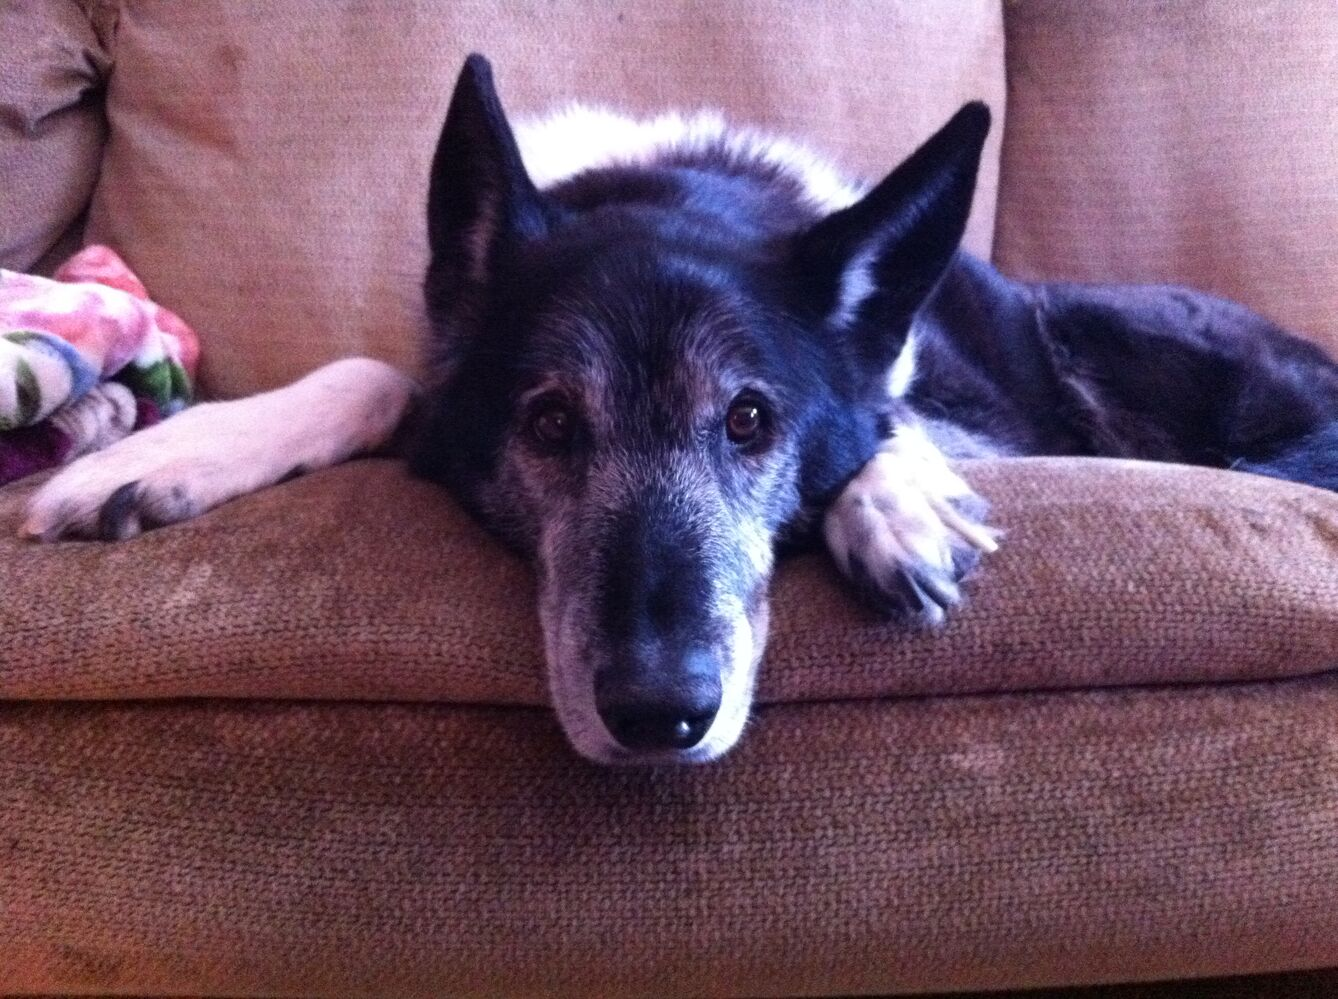 This is Tai, at 14, the senior dog in the Casemore household. Tai is a black border collie/ German shepherd cross. Tai weighs 29.8 kilos, a healthy weight, says owner Alexis Casemore.  Pet Valu's Fit Pet Project (Submitted photo)